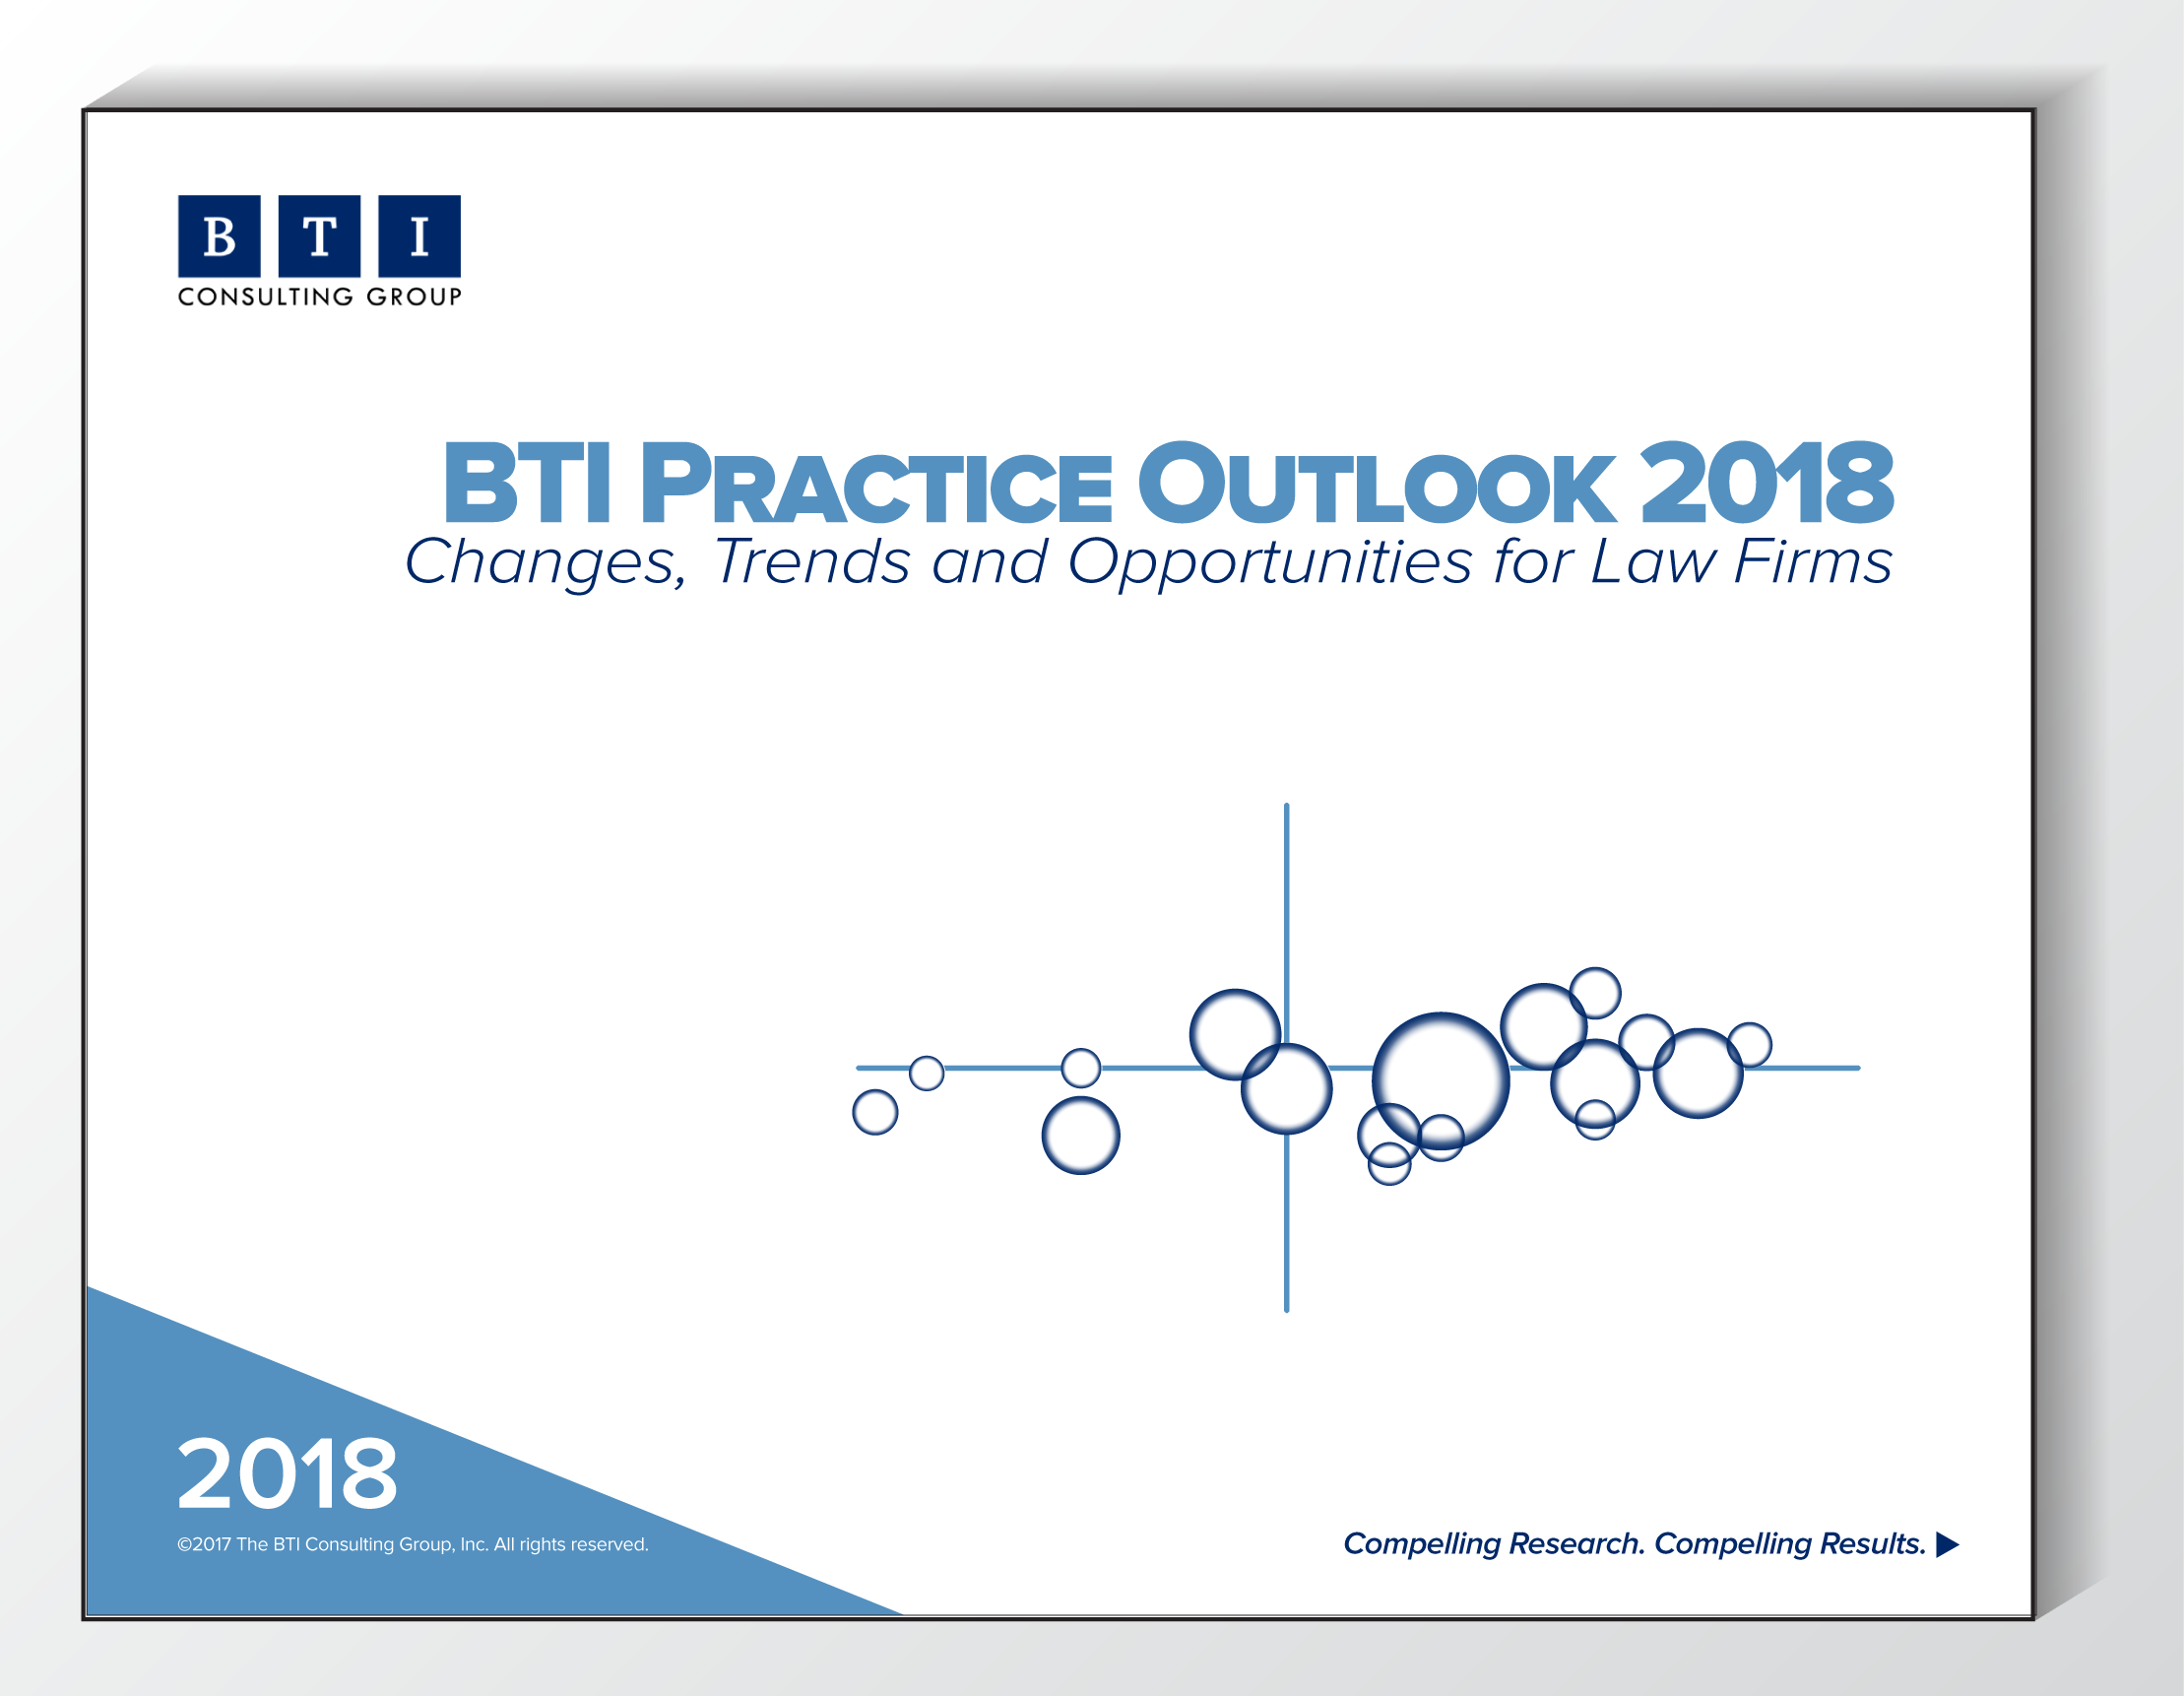 BTI_Practice_Outlook_2018_Cover.png